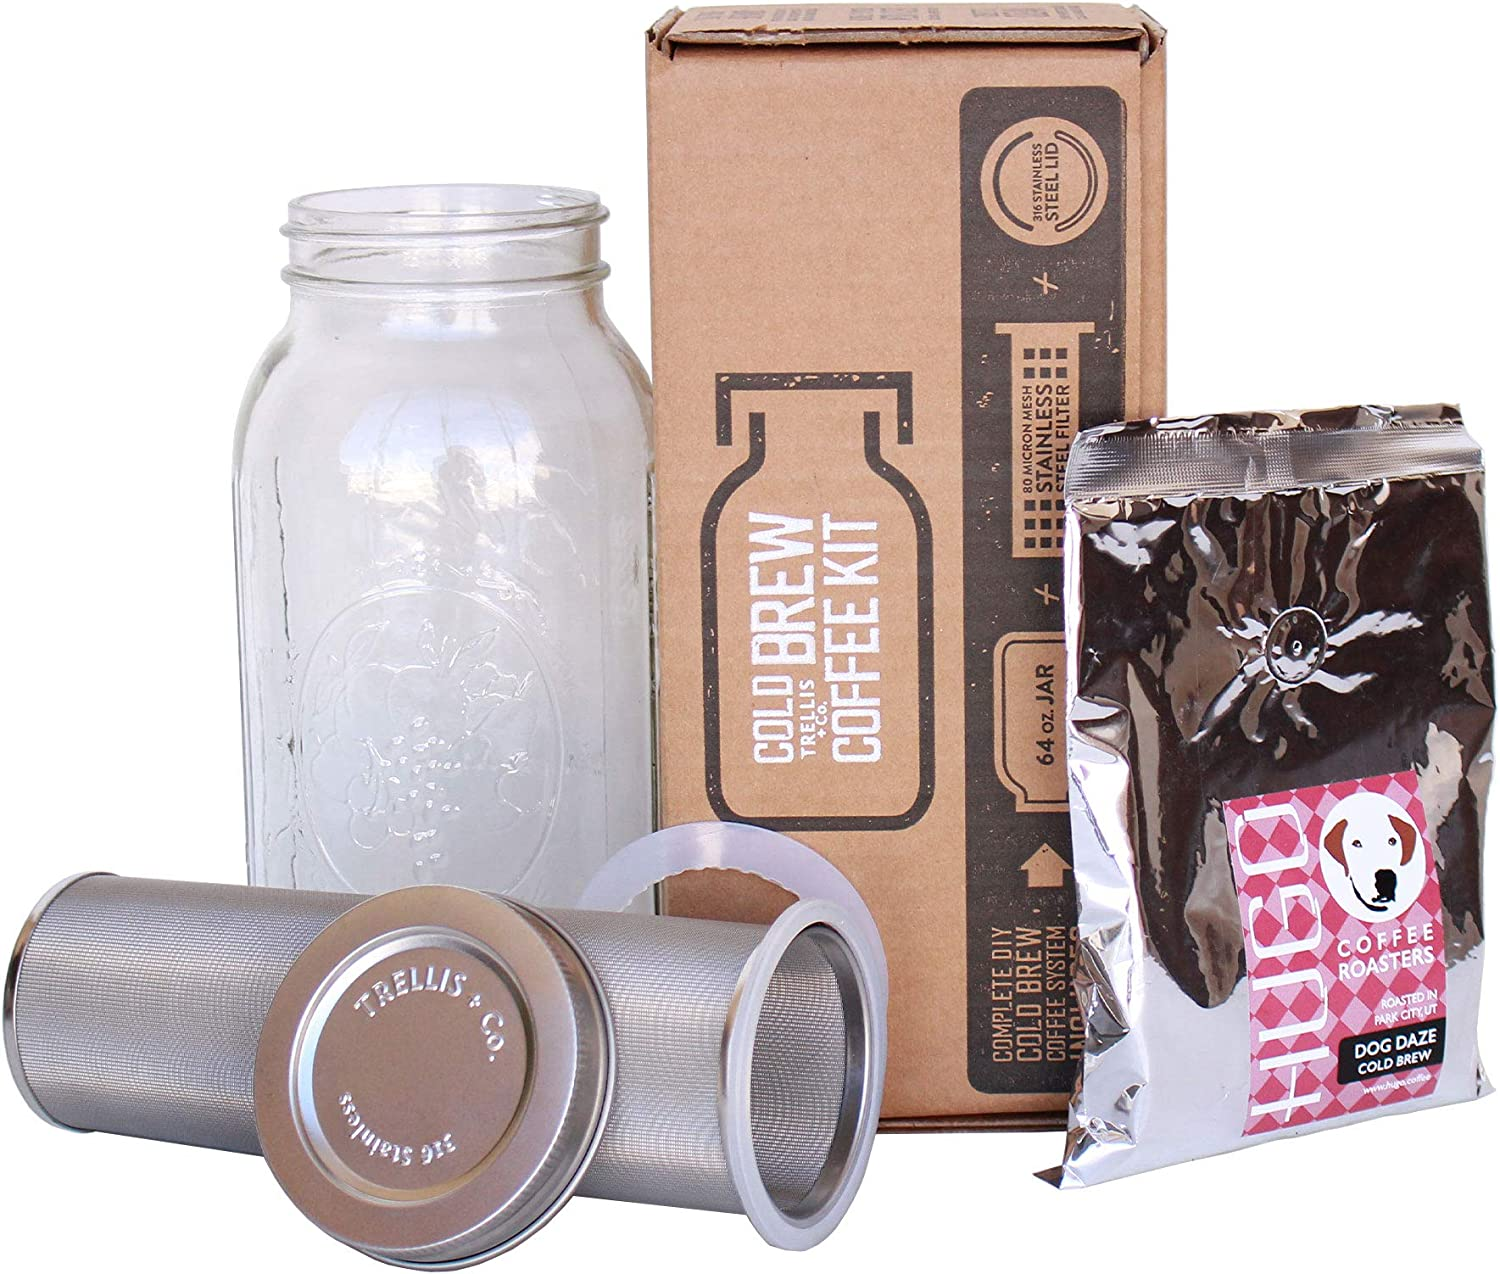 T Co. Cold Brew Coffee Maker Kit with 64 Oz Mason Jar, Stainless Steel Filter Lid, Coffee – 80 Micron Woven Filter, Lid Gaskets, Instructions – Cold Brewed Coffee Iced Tea Kit